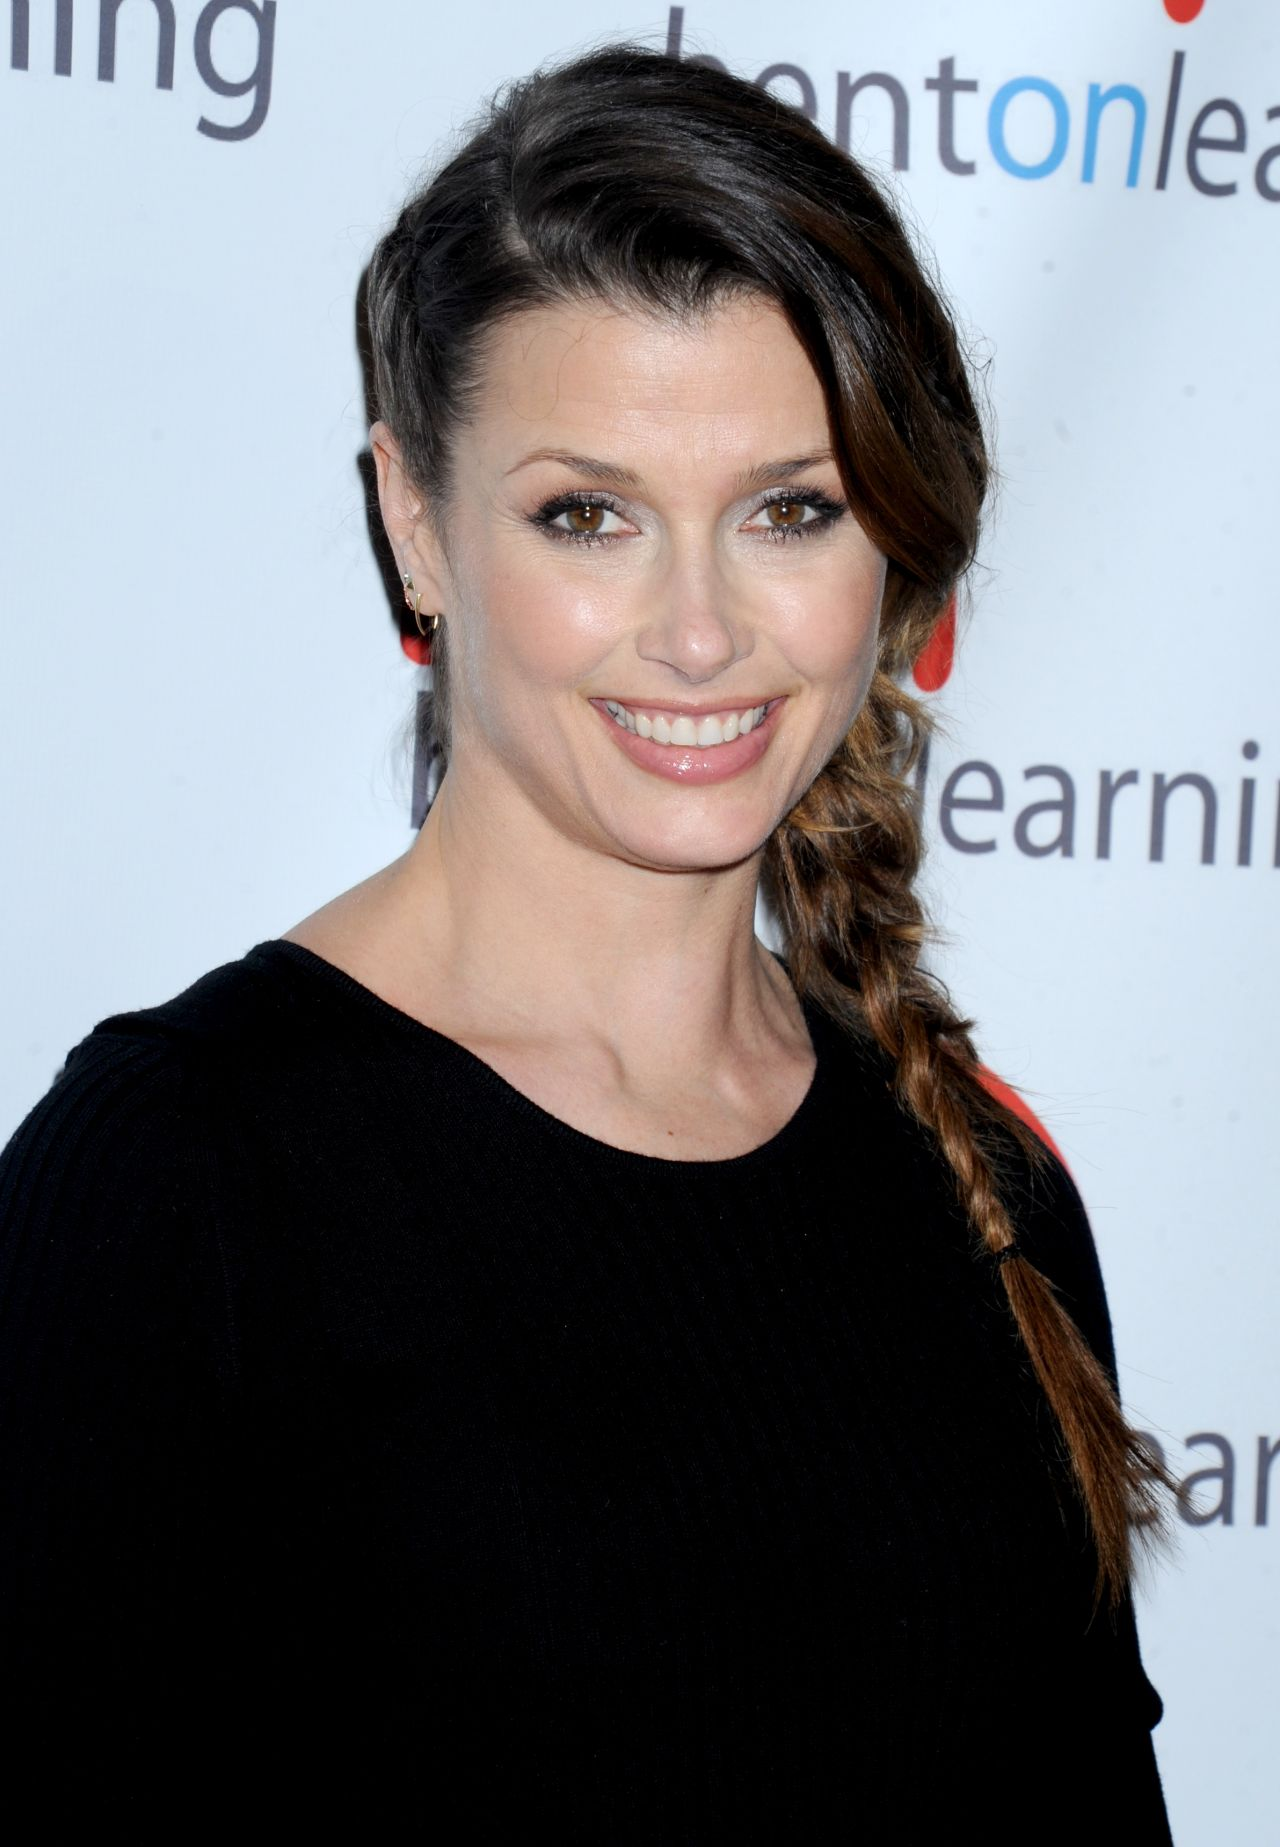 Bridget Moynahan - 2015 Bent On Learning Inspire Gala in New York City